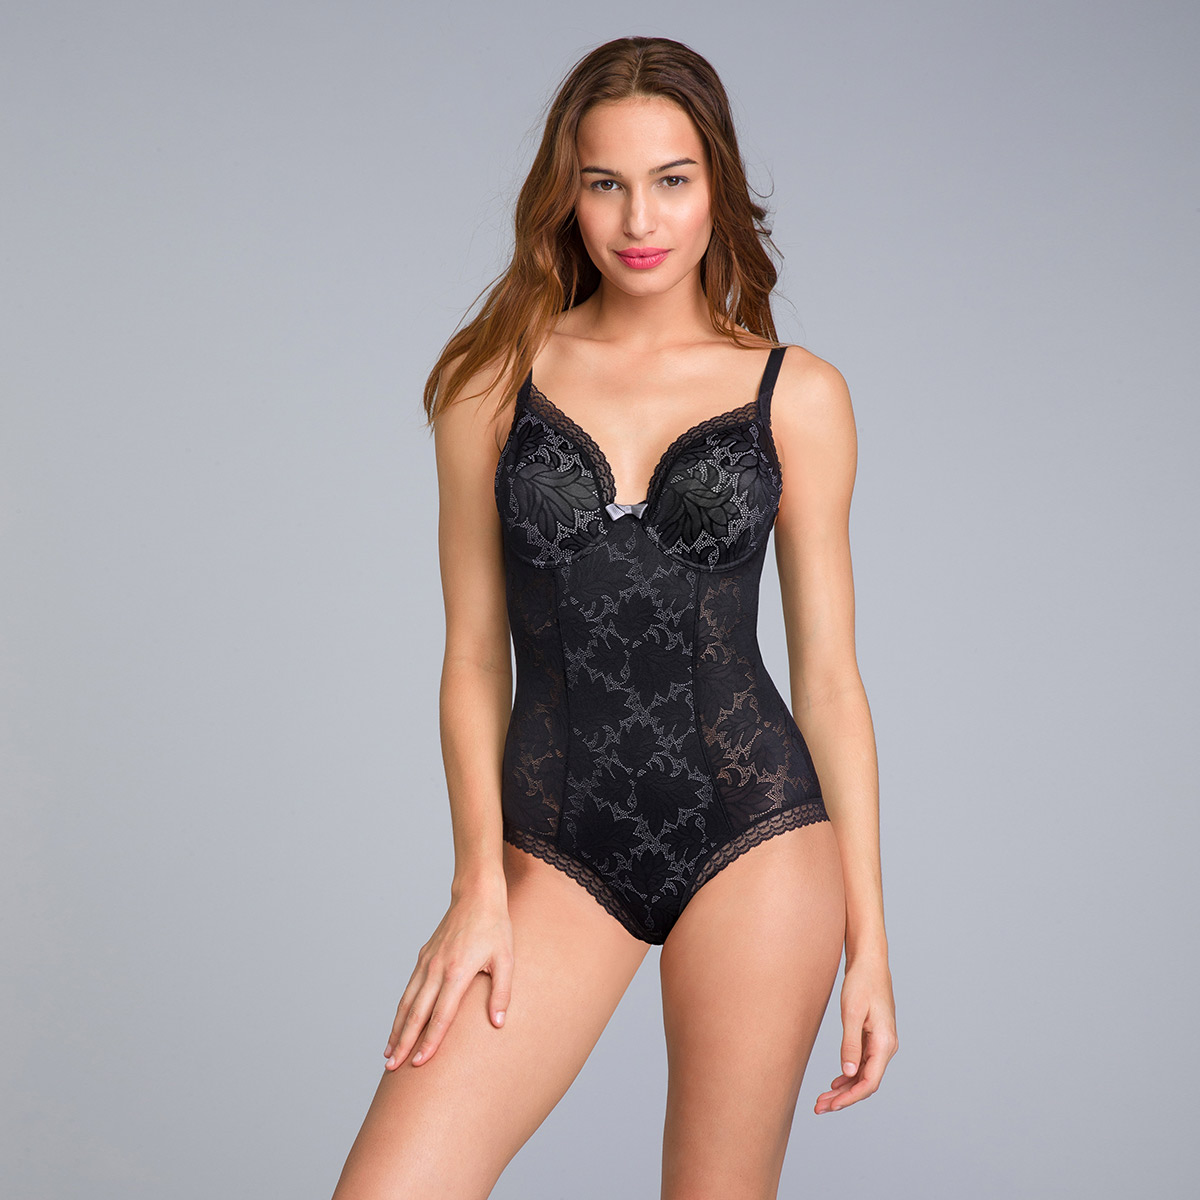 Underwired bodysuit in black lace Invisible Elegance, , PLAYTEX